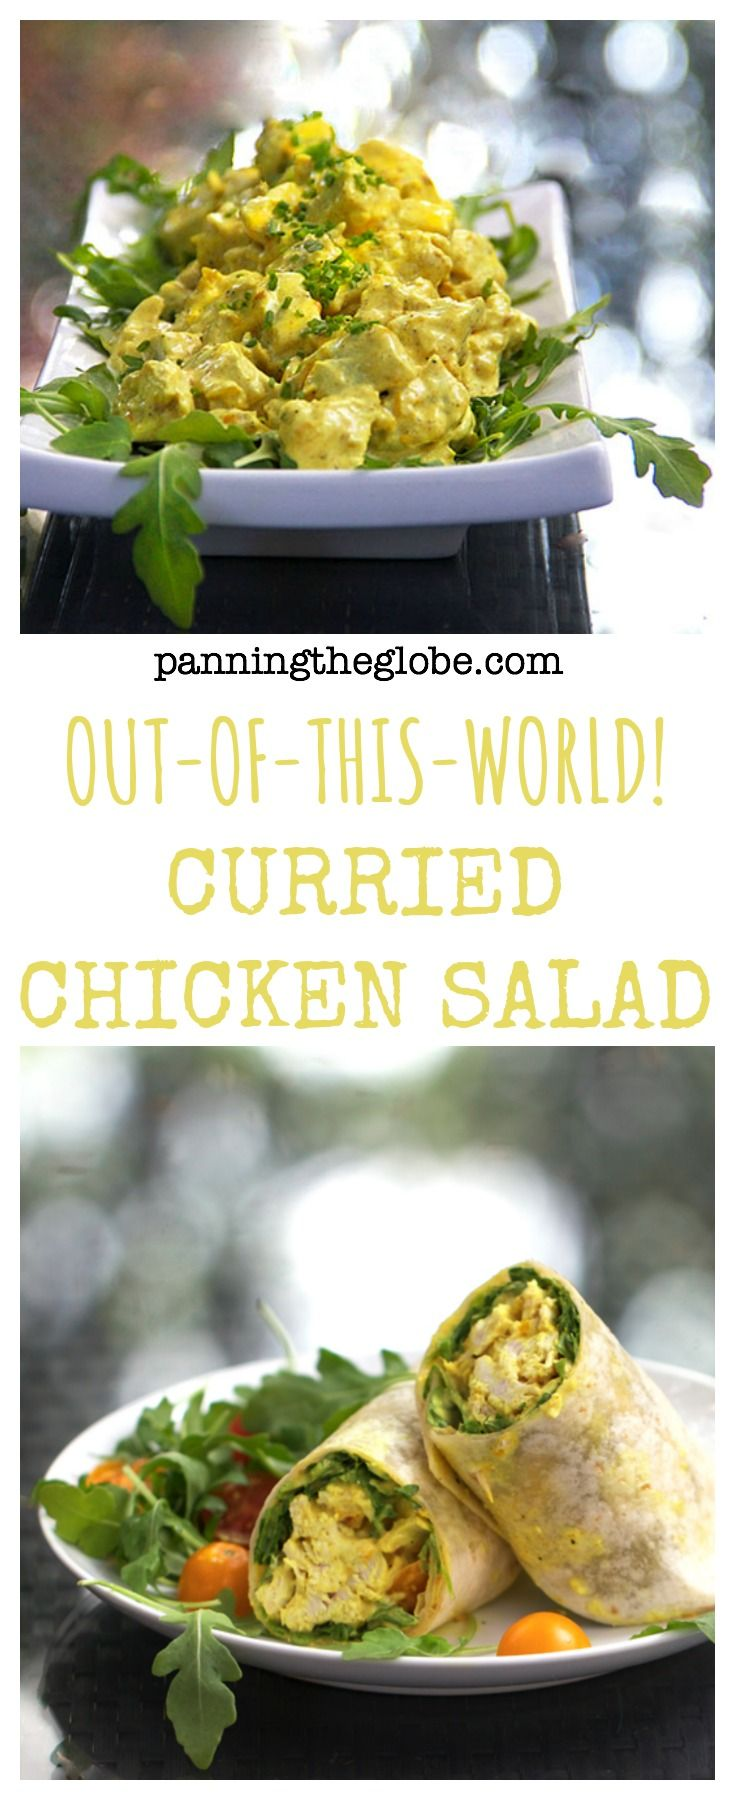 Perfect Curried Chicken Salad - everyone needs a great curried chicken salad in their repertoire.